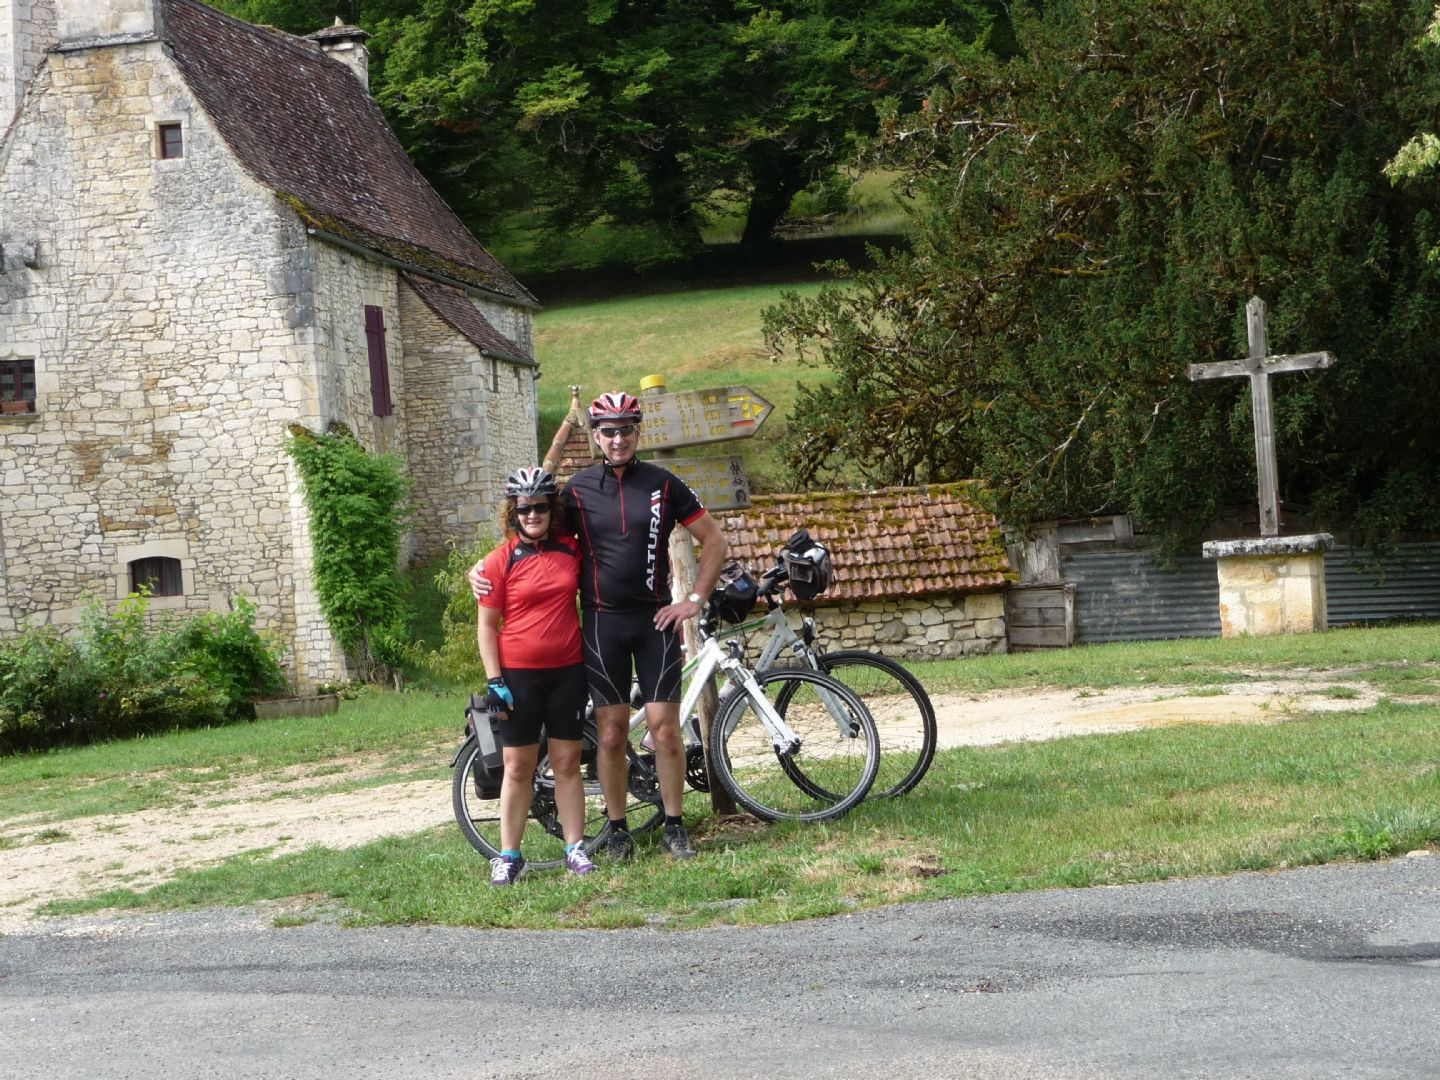 dordognecycling8.jpg - France - Dordogne Delights - Self-Guided Leisure Cycling Holiday - Leisure Cycling